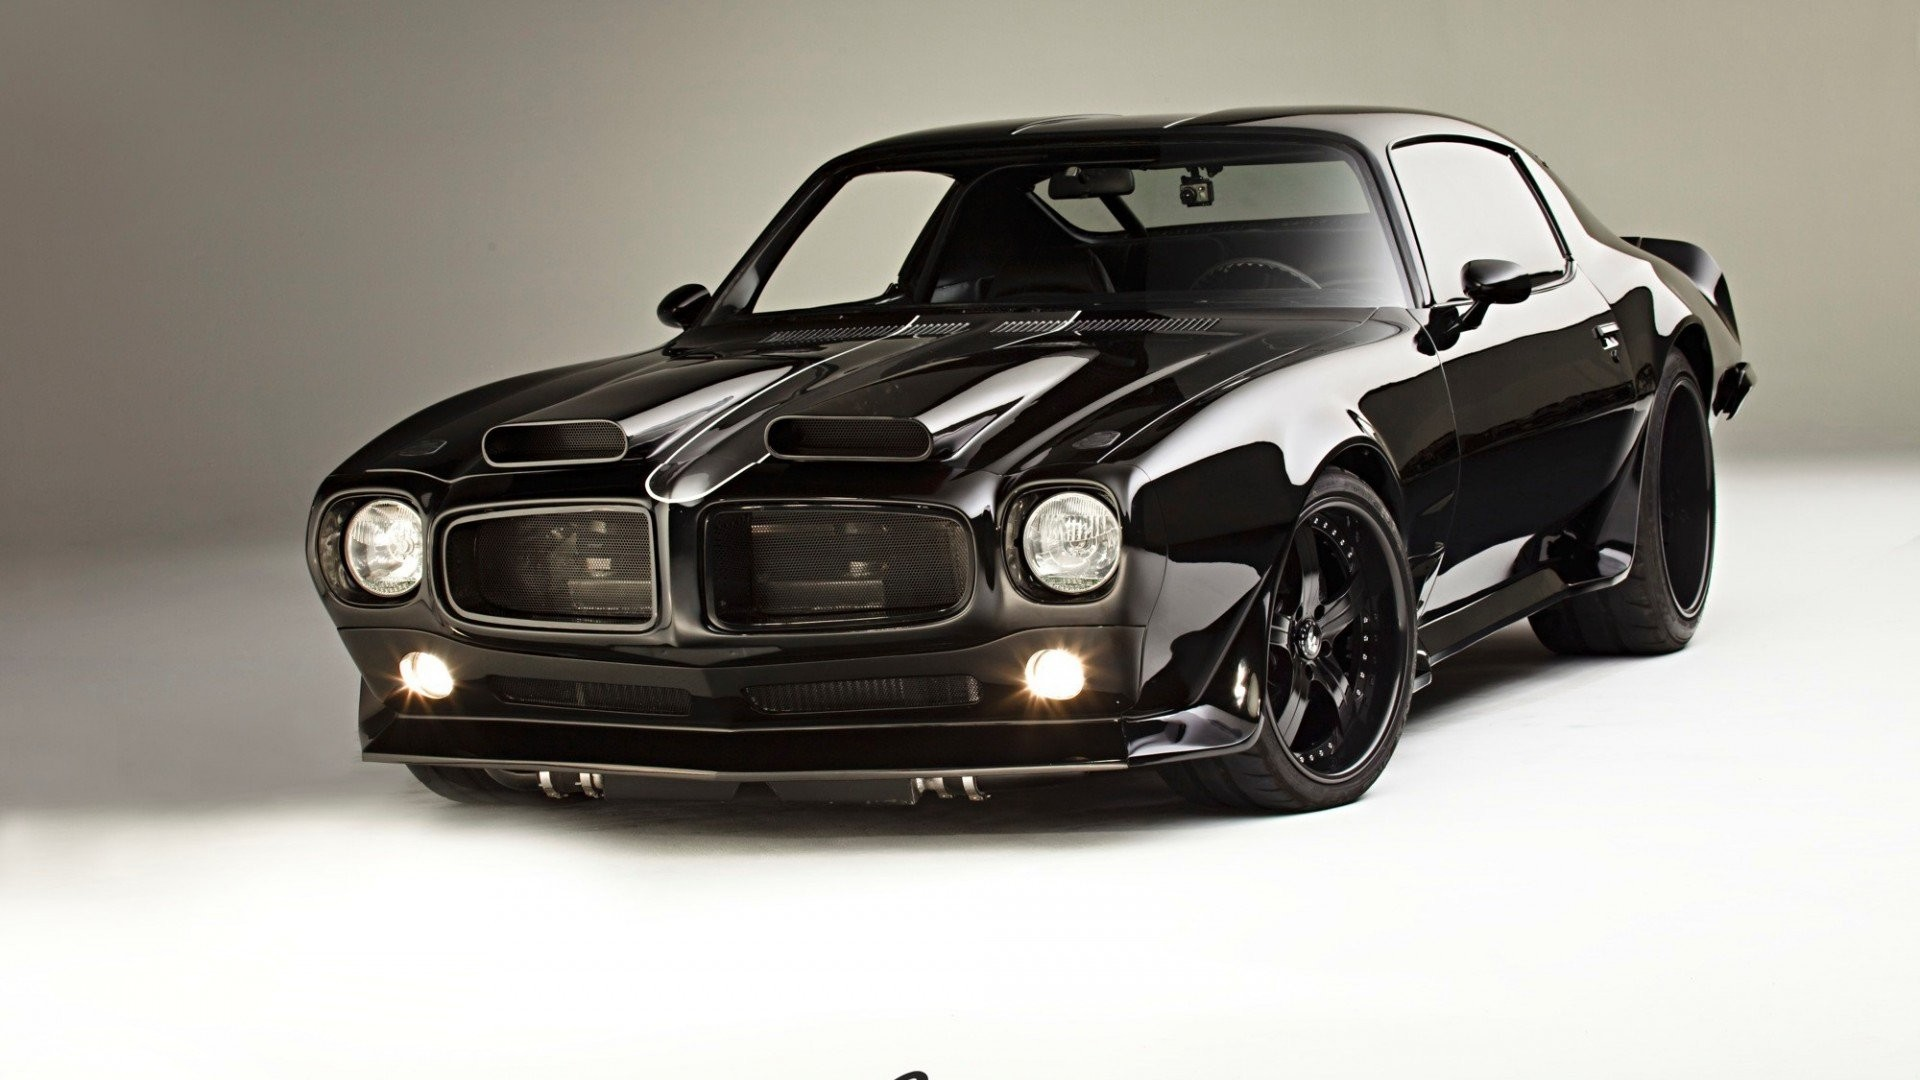 1920x1080 Pontiac Firebird Wallpaper 3 - 1920 X 1080